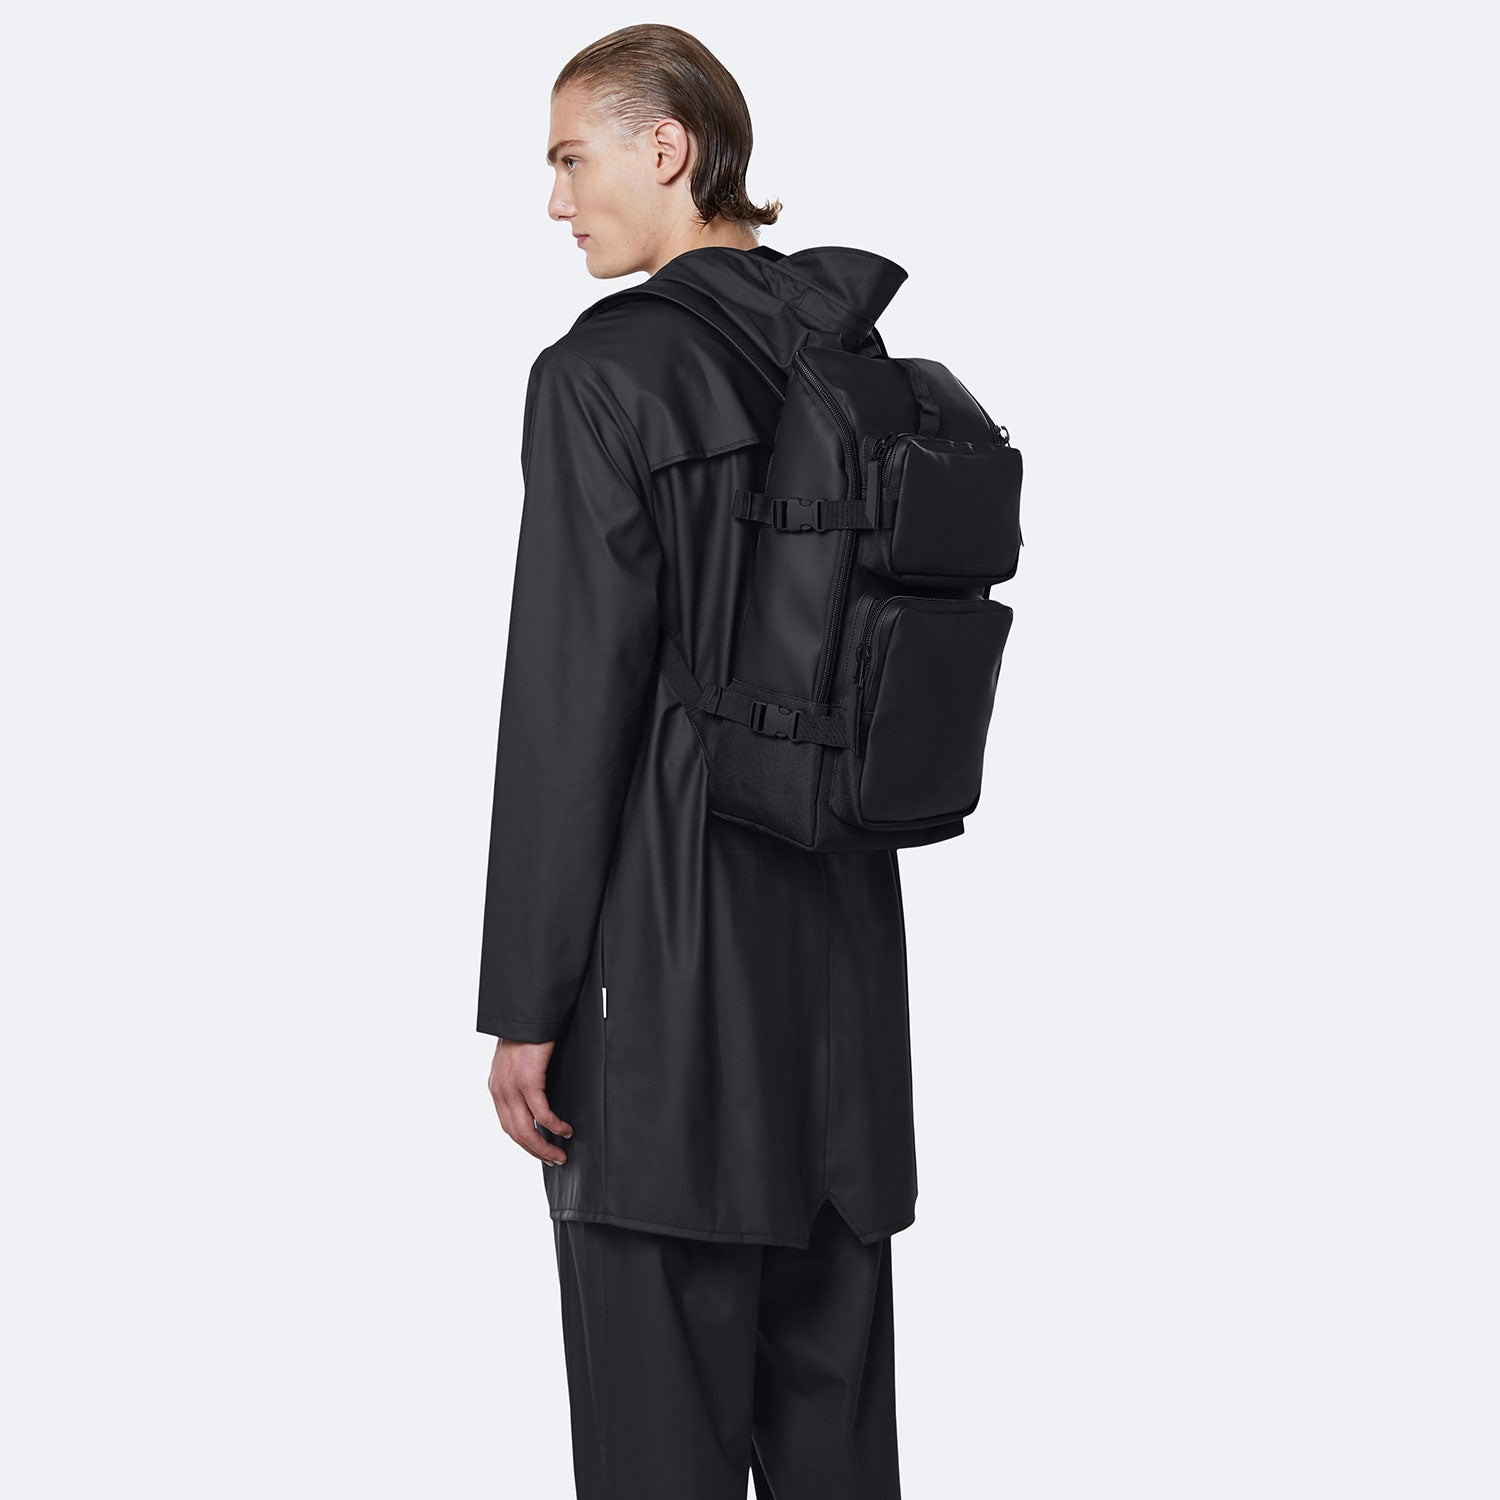 Charger Backpack